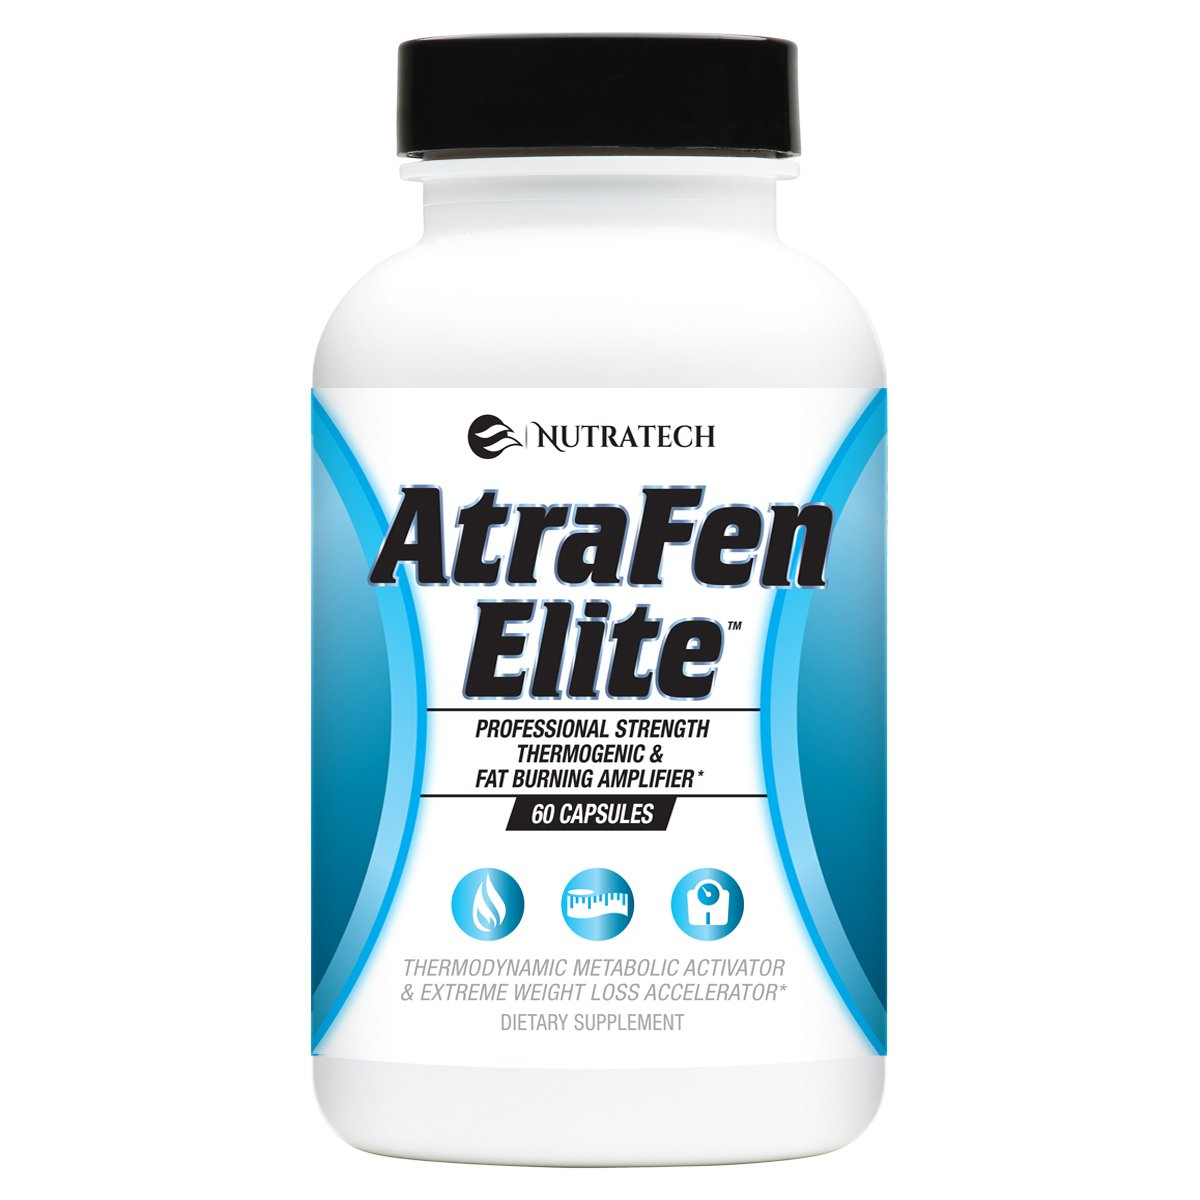 Atrafen Elite - Professional Strength Diet Aid That Supports Weight Management, Promotes Energy and Helps Suppress Food Cravings & Appetite. Dietary Supplement. 60 Pills.